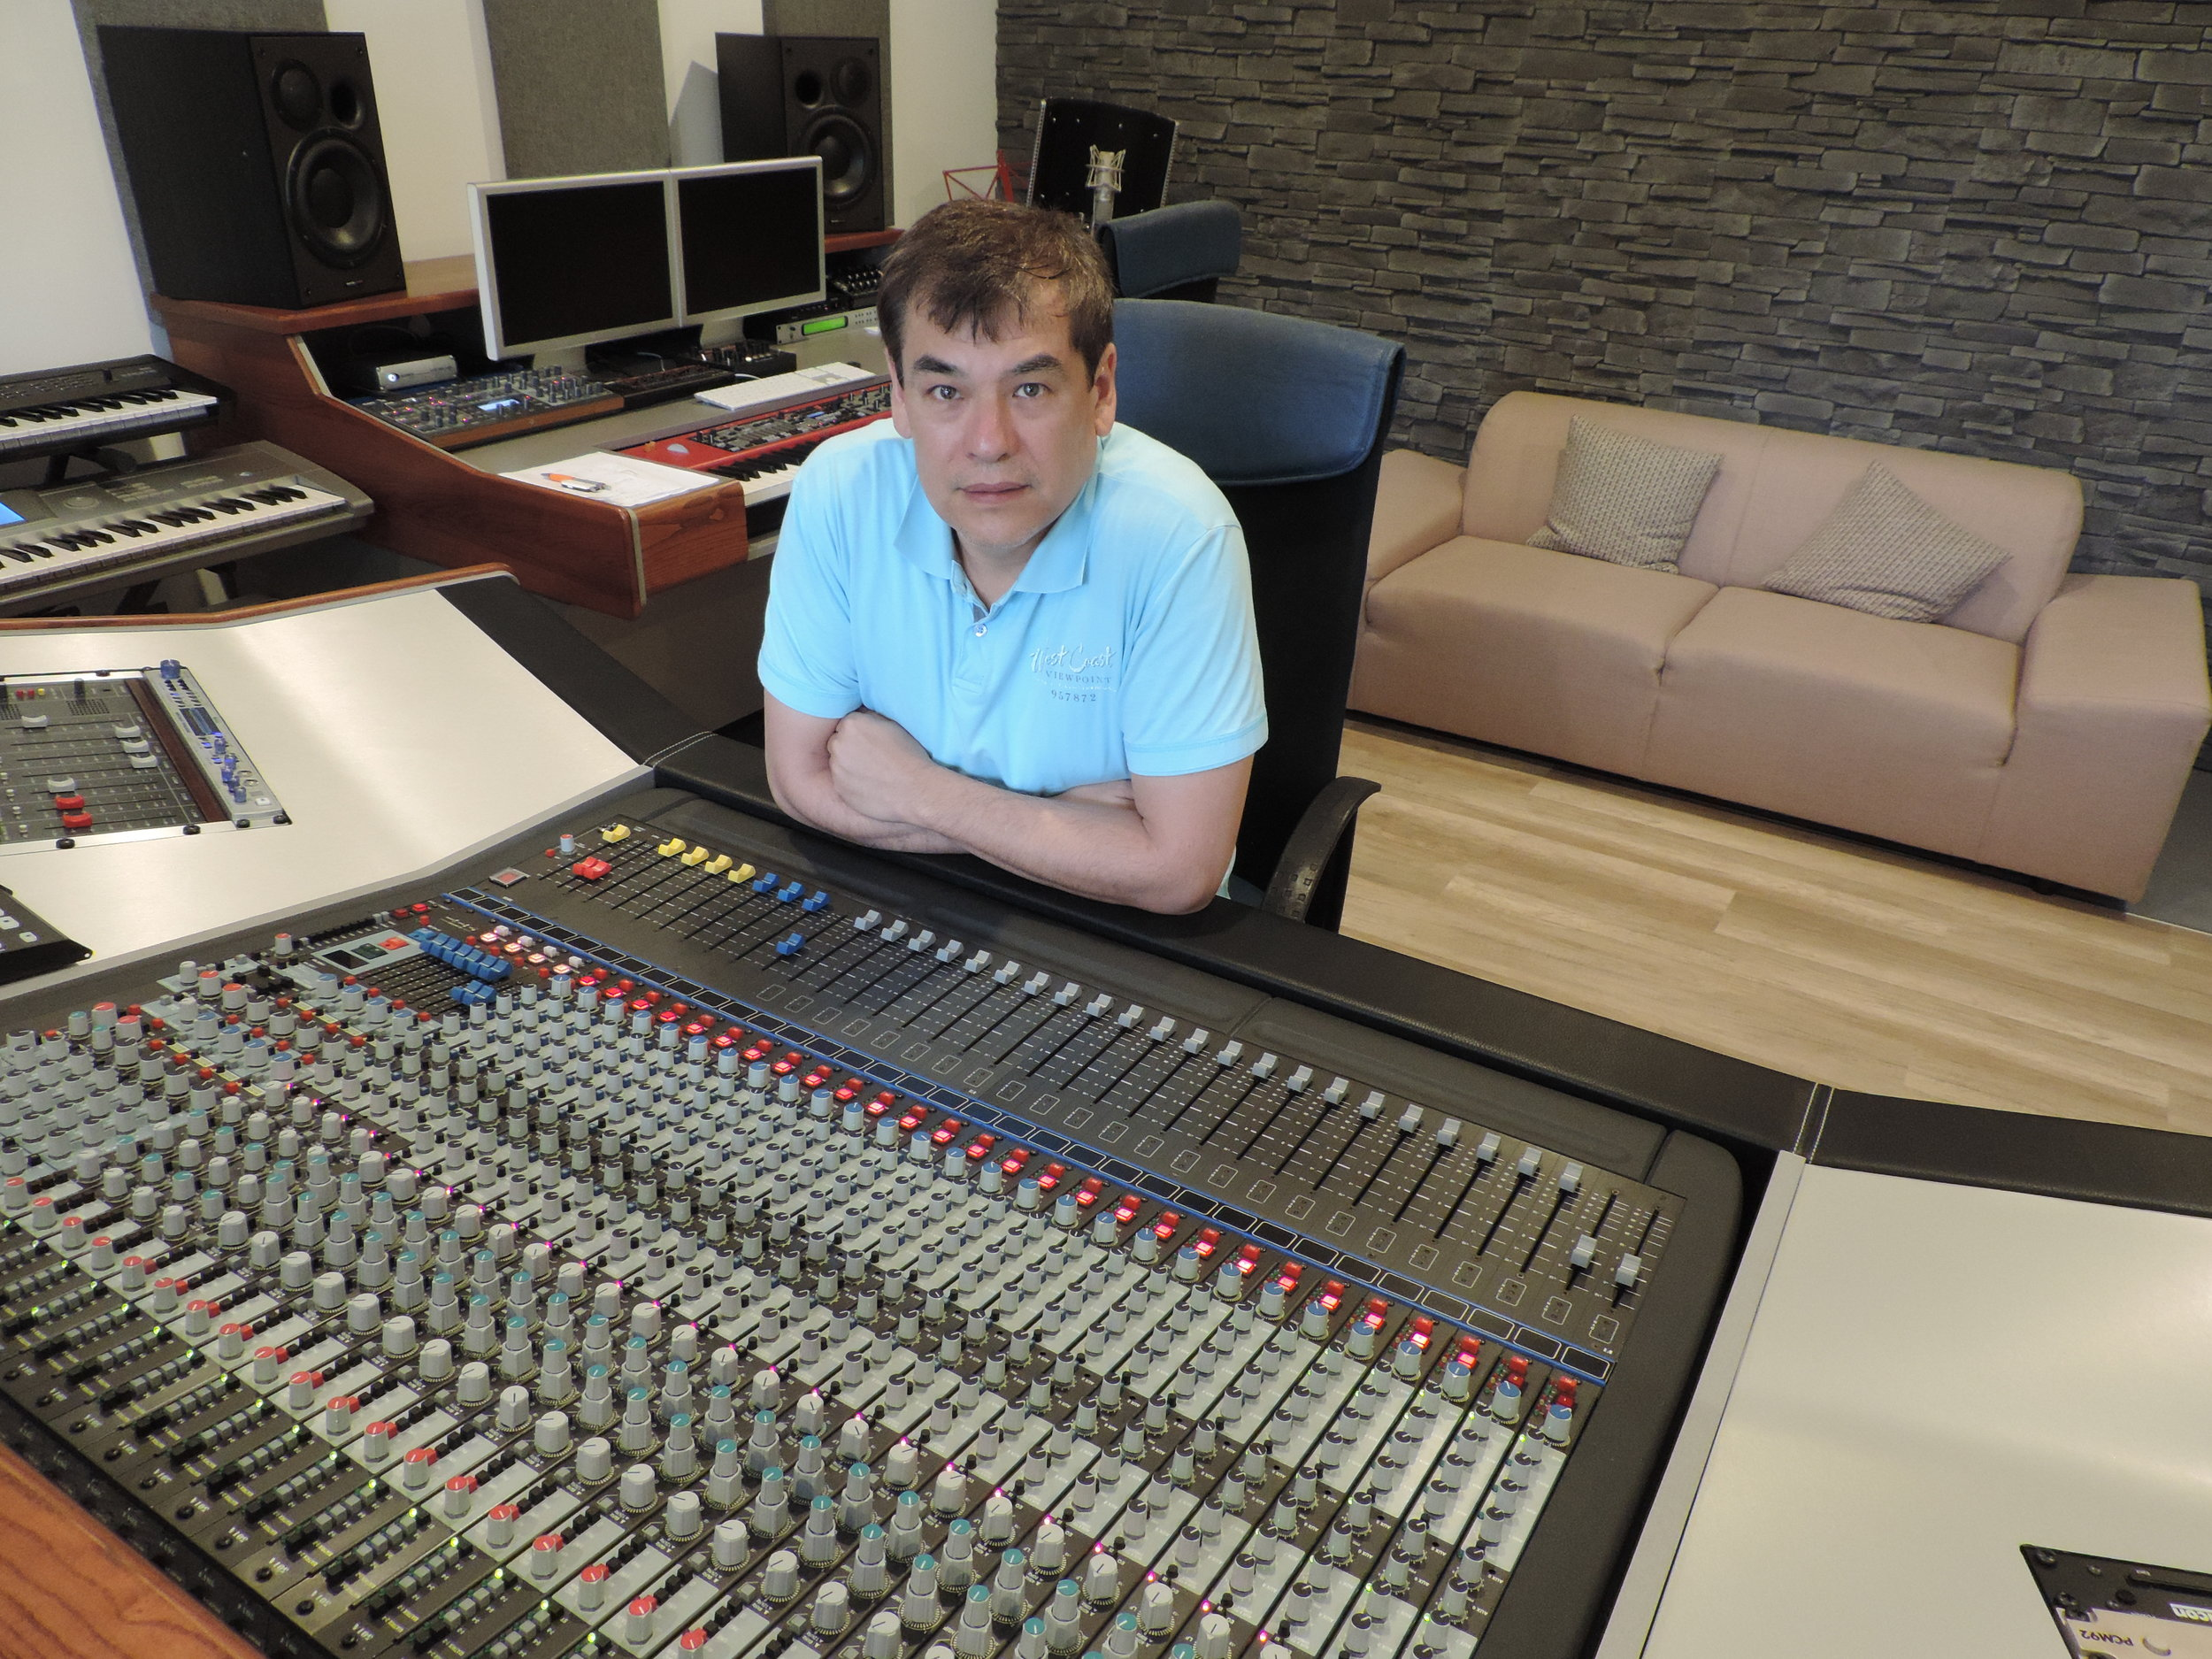 """"""" I have decided that I definitely won't wait another 6 years for a new album to come out. I think I would like to release projects every 2 years as I did before. """" -Naoki Kenji"""